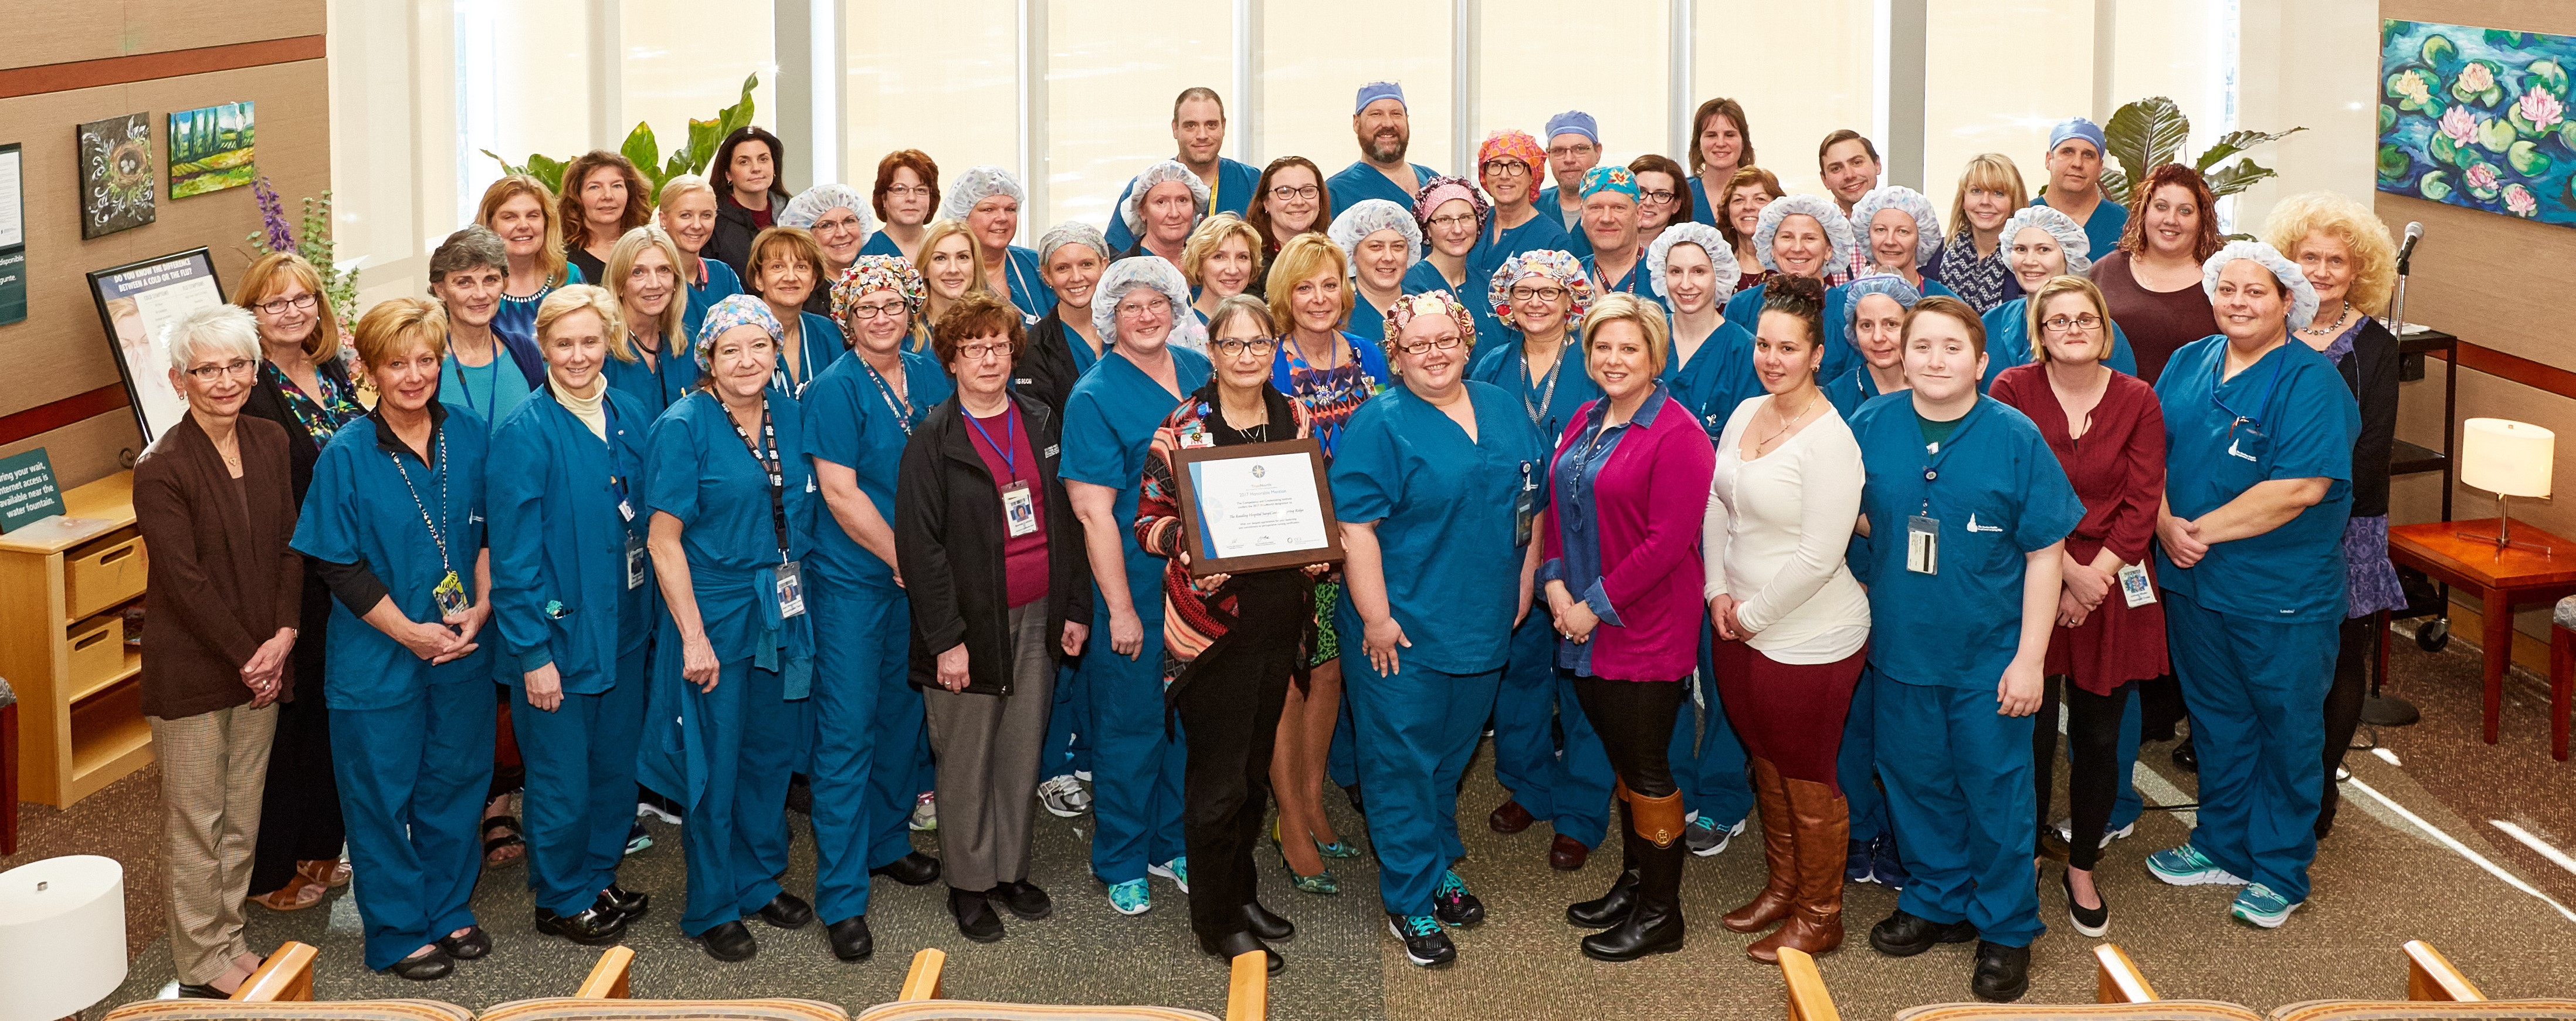 Hospital Highlight - The Reading Hospital SurgiCenter at Spring Ridge